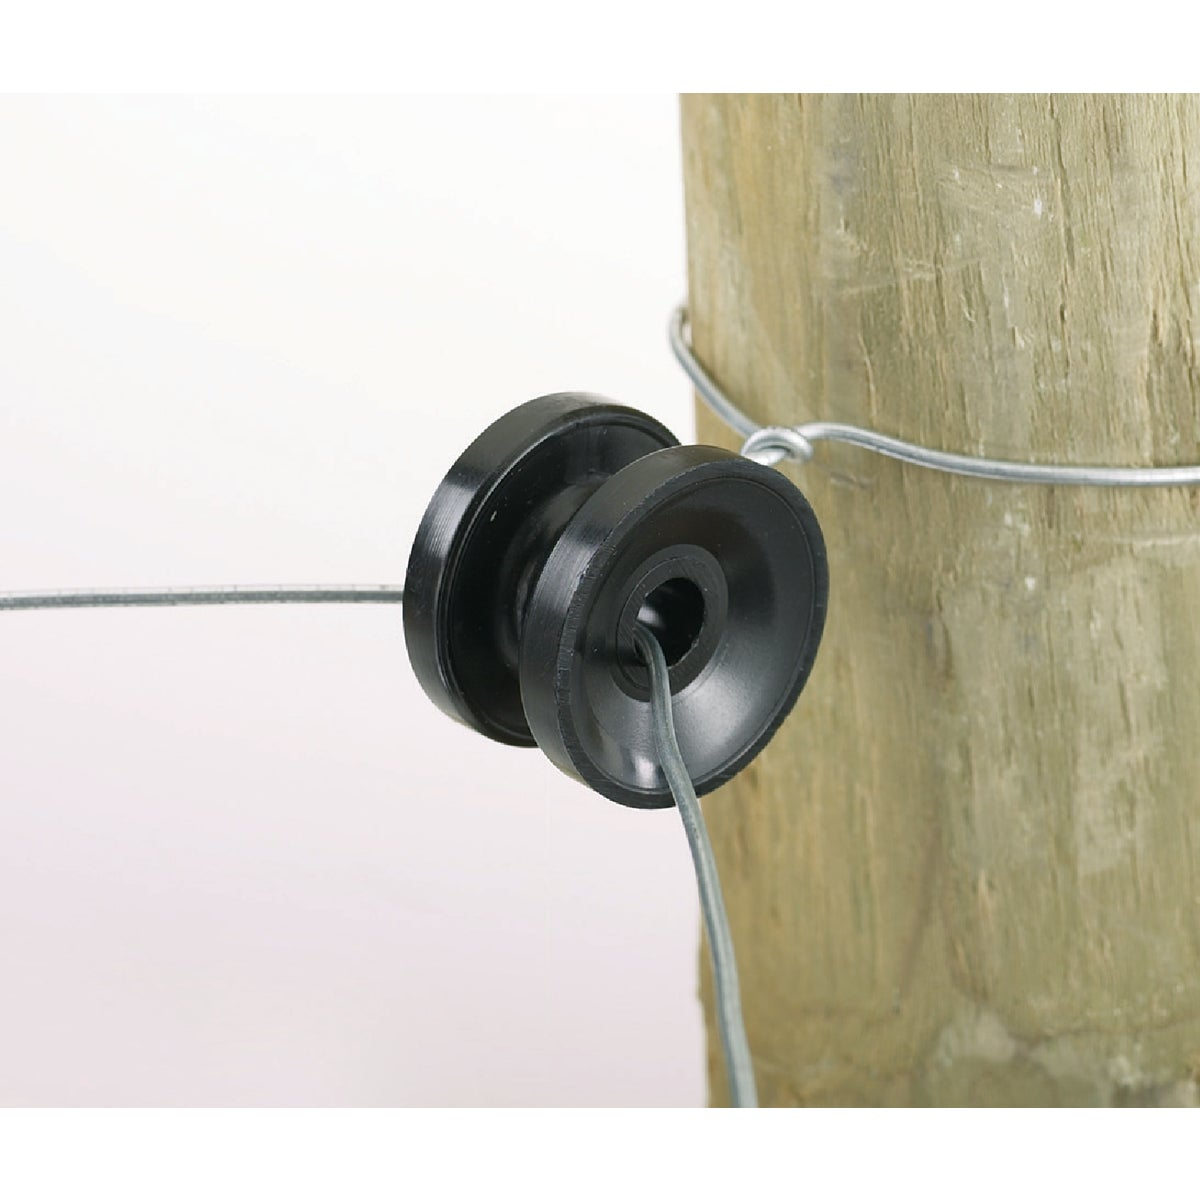 DONUT CORNER INSULATOR - 1752-10 by Dare Products Inc